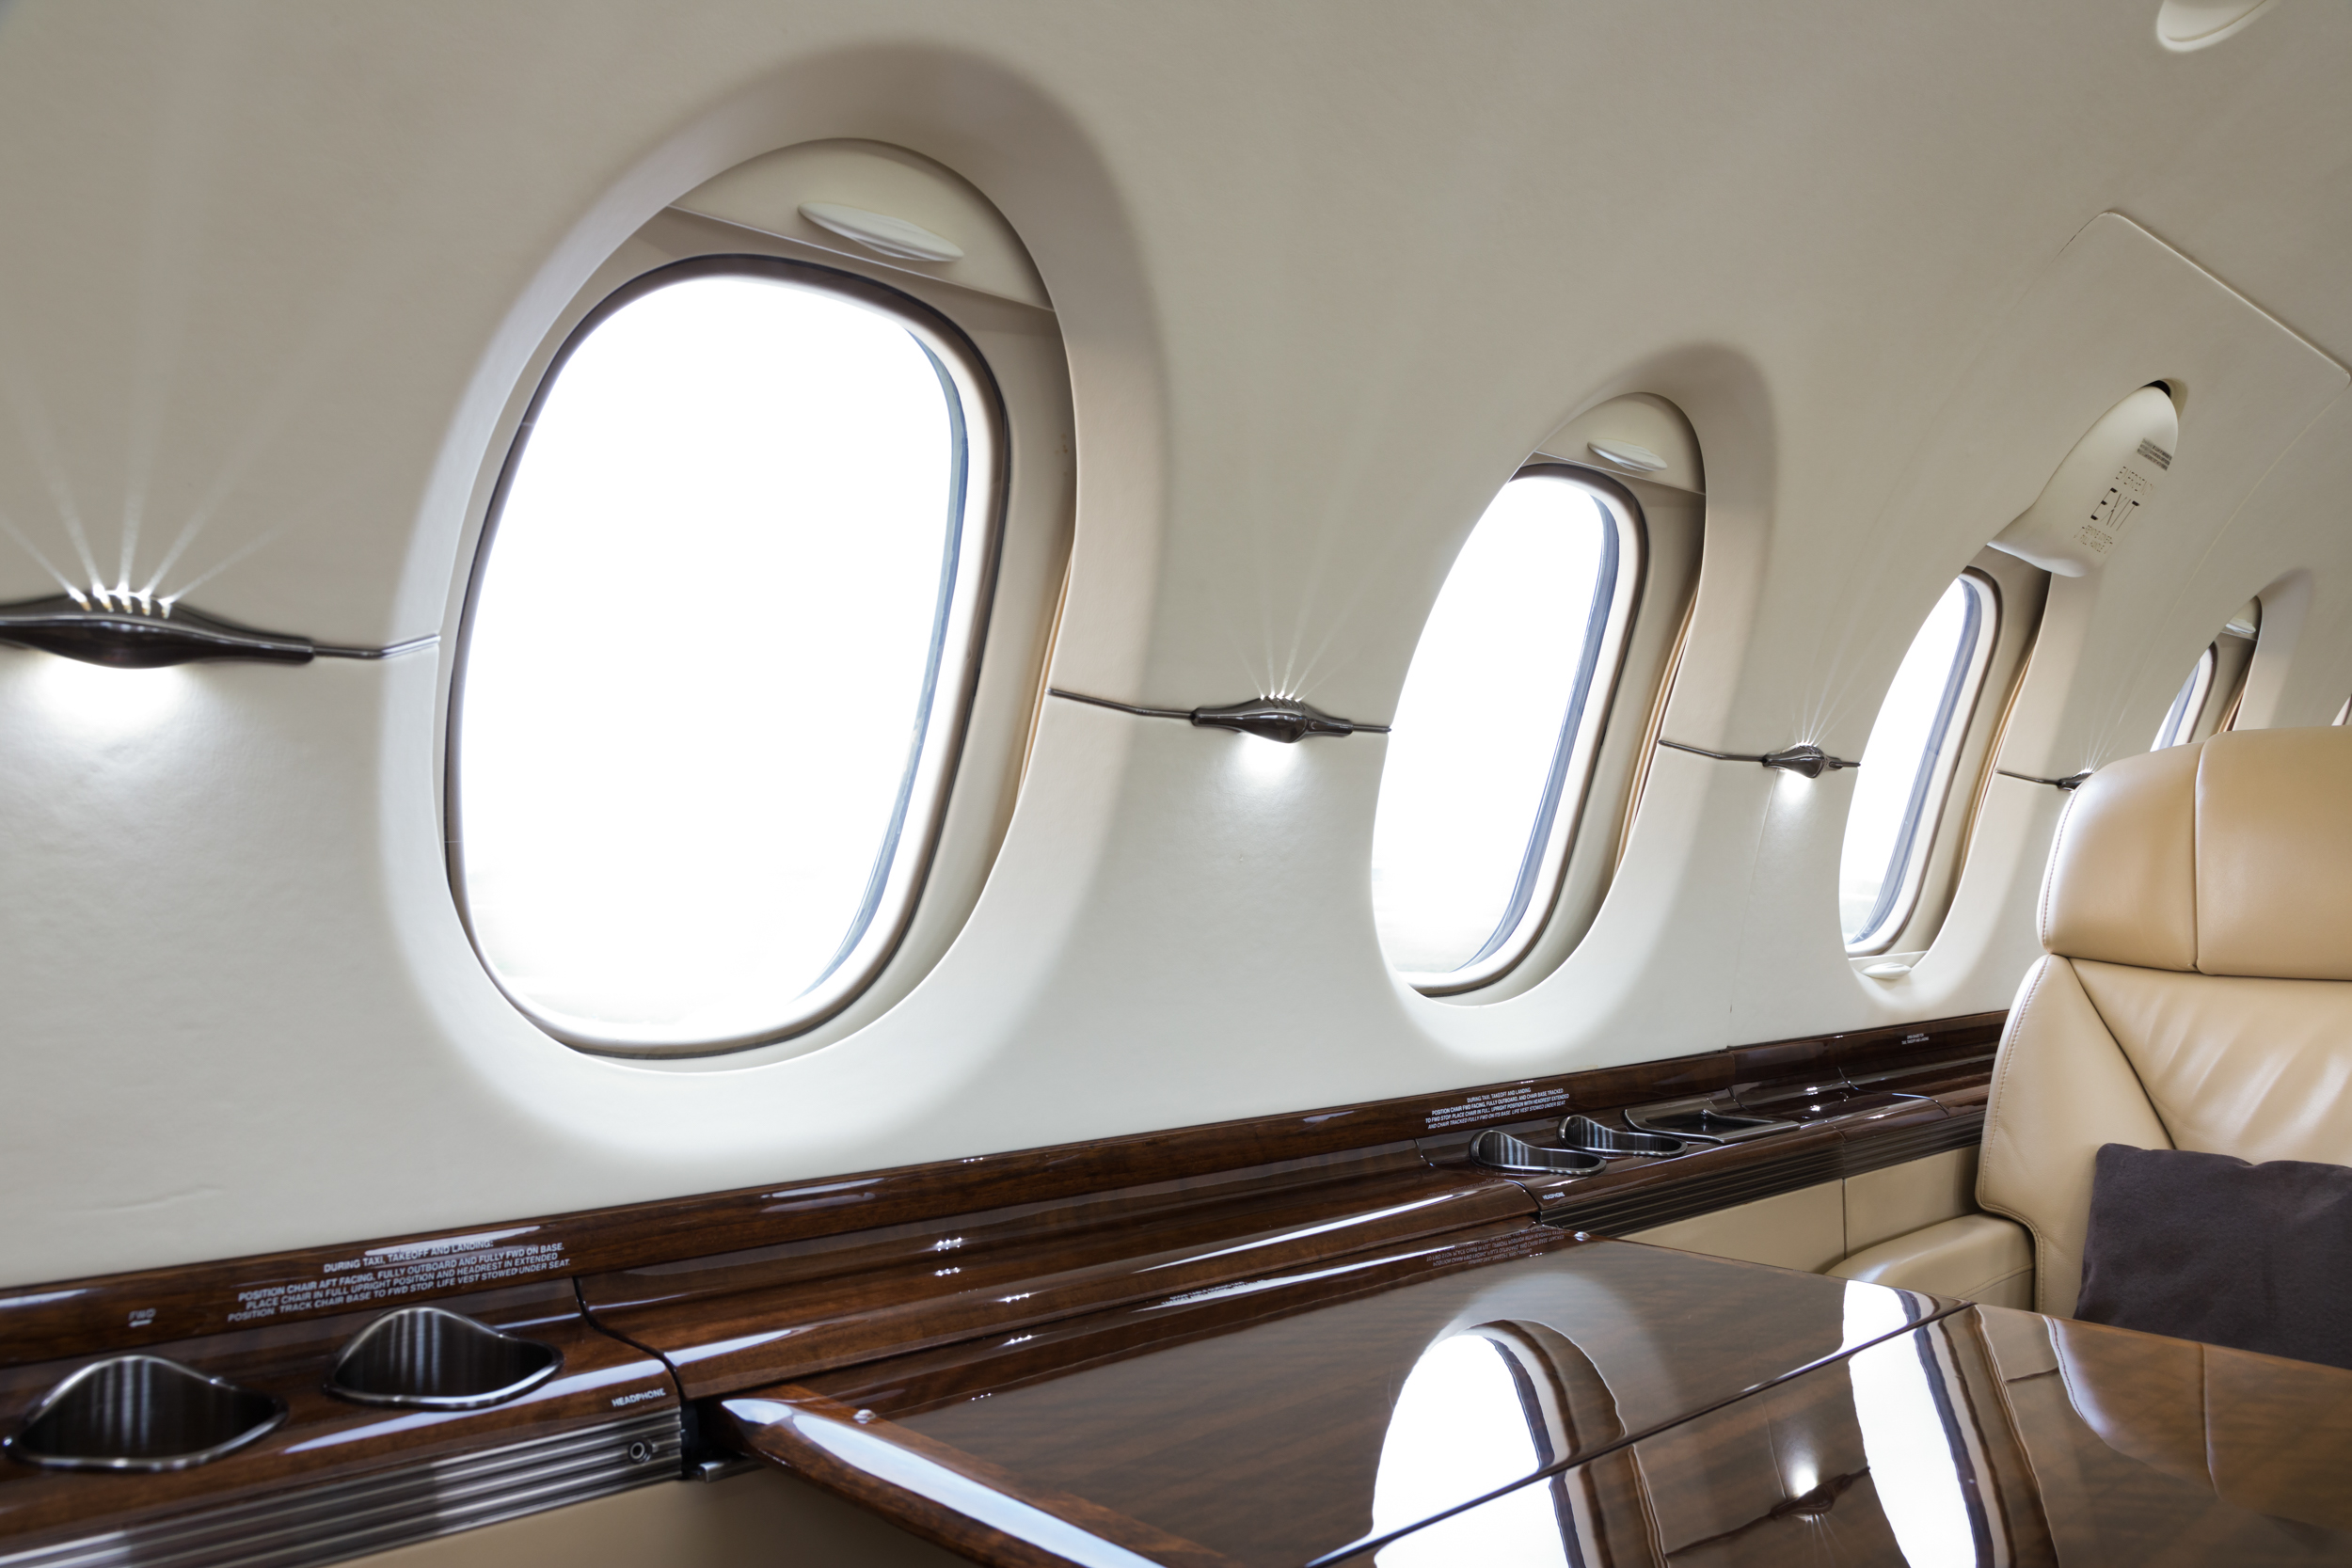 paul craig photographer, interior photography, Private Jet commercial